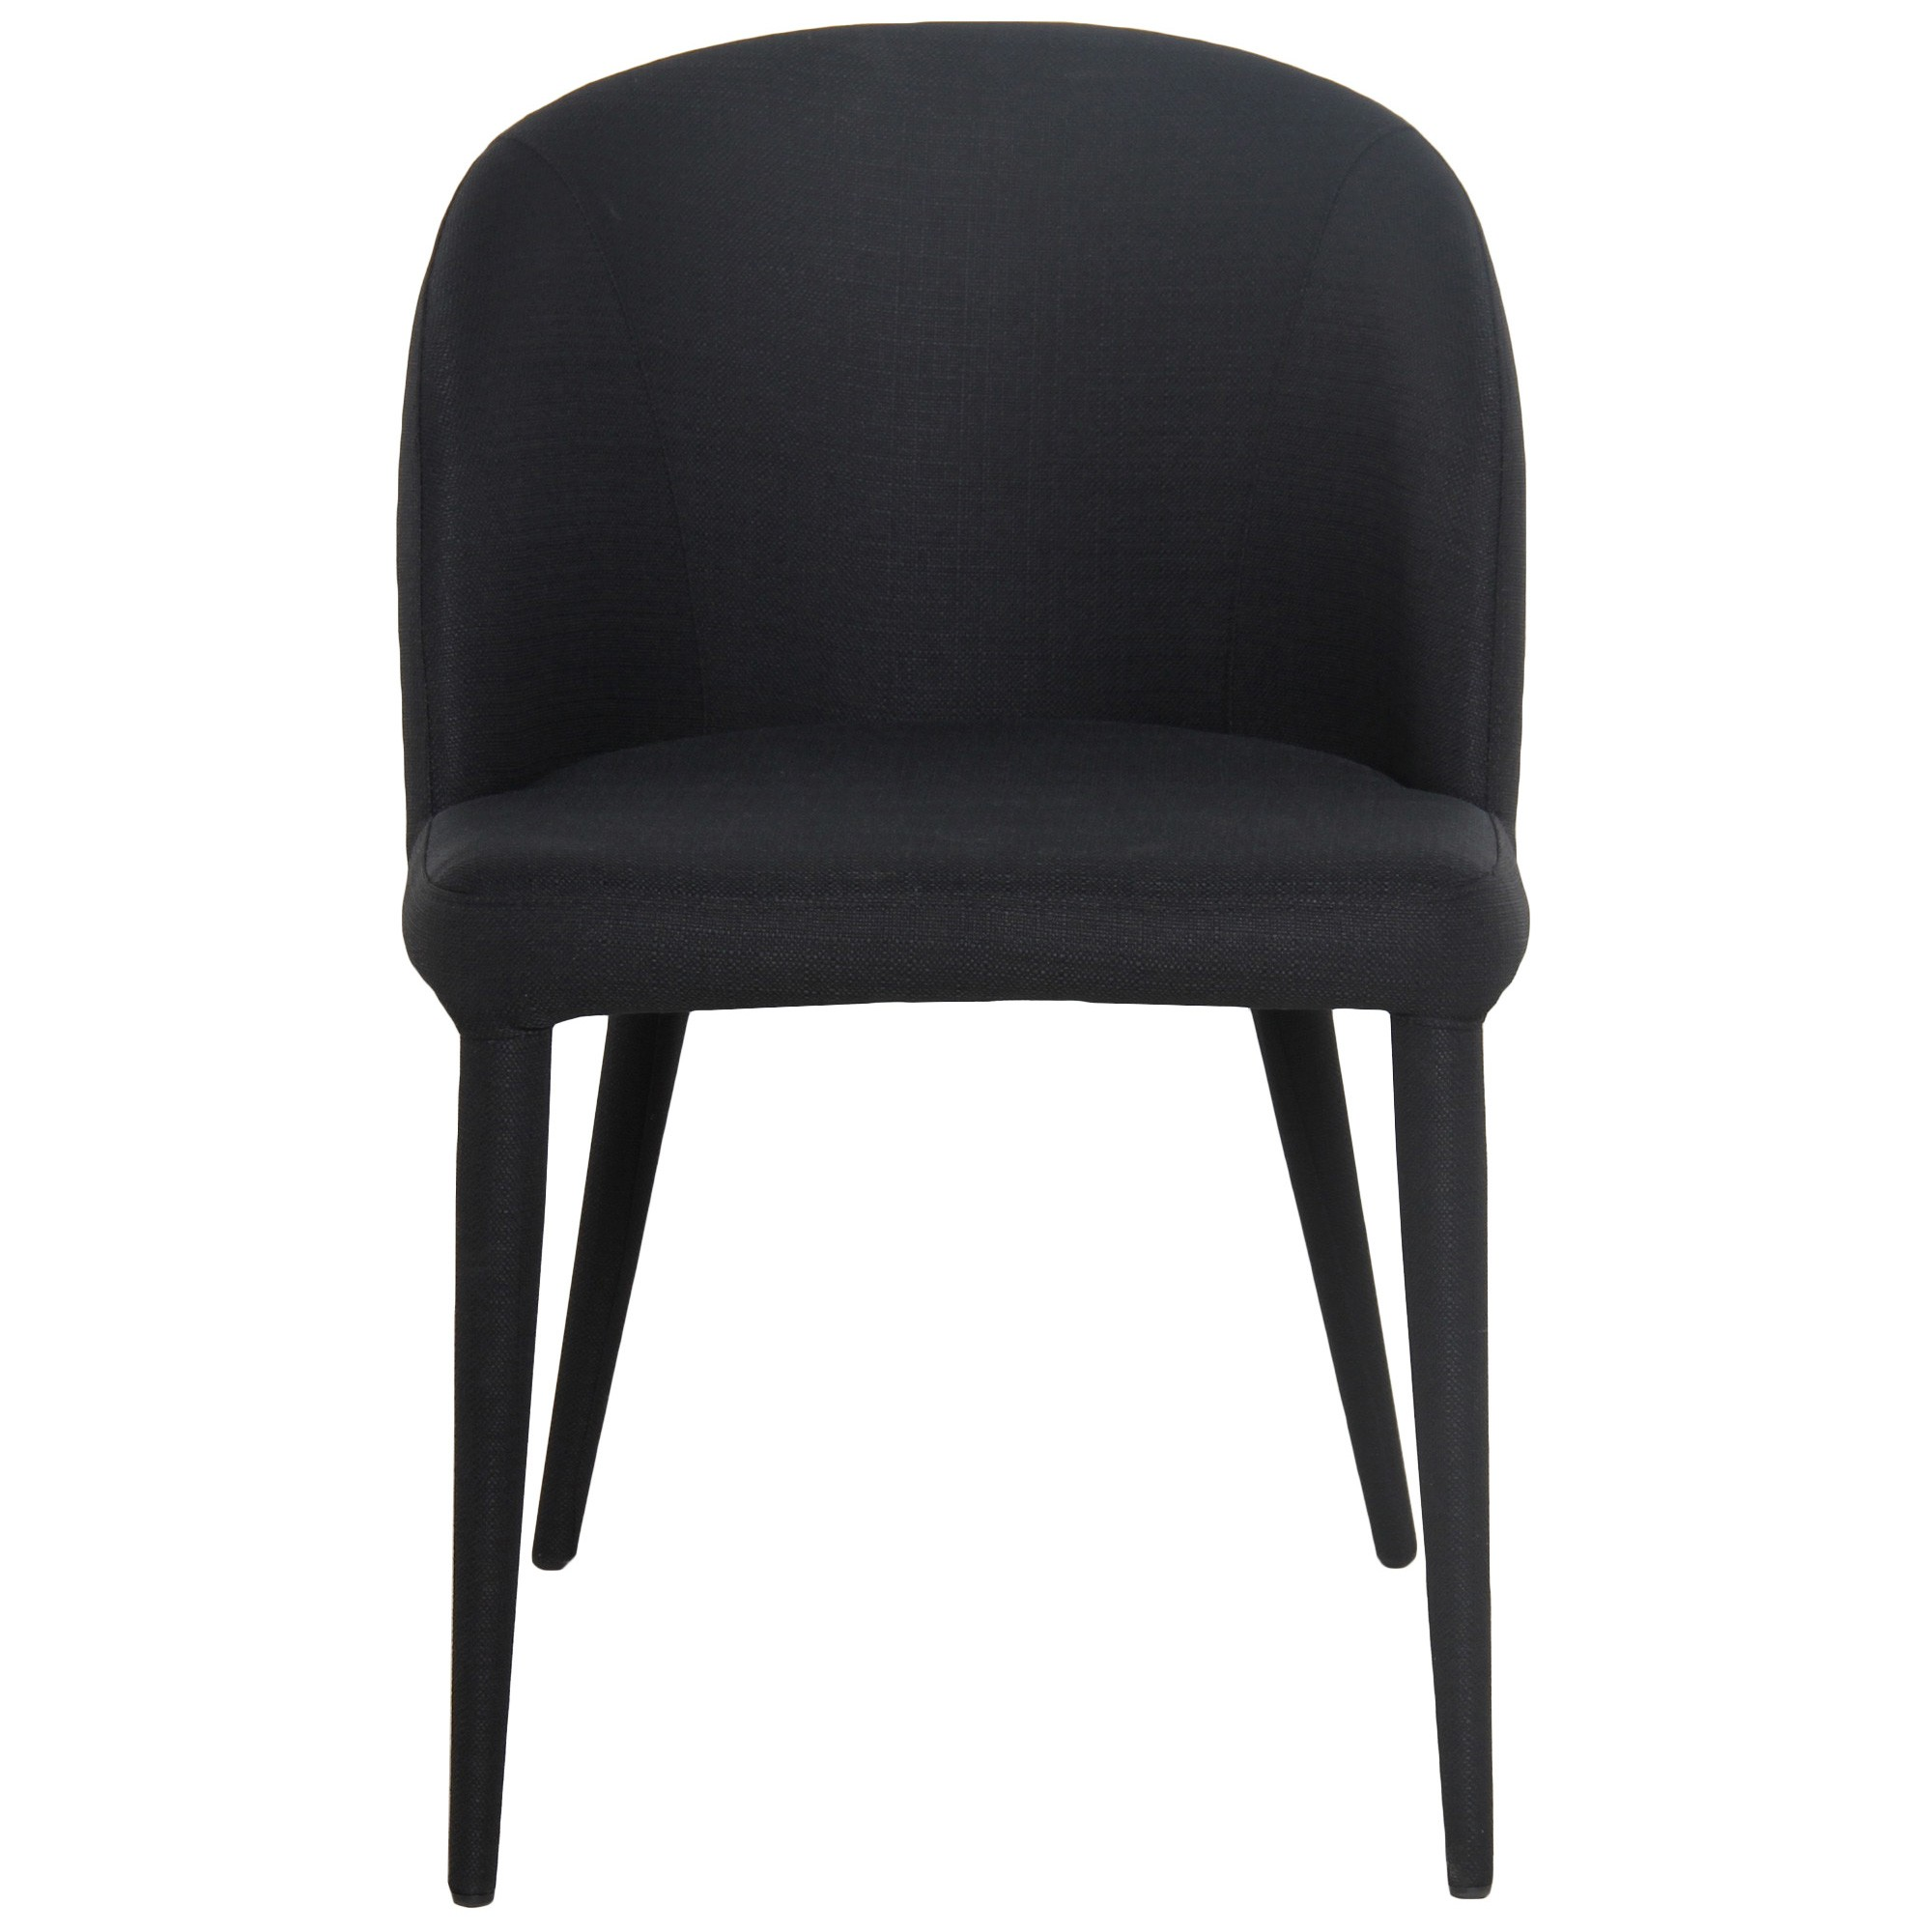 Paltrow Fabric Dining Chair, Black